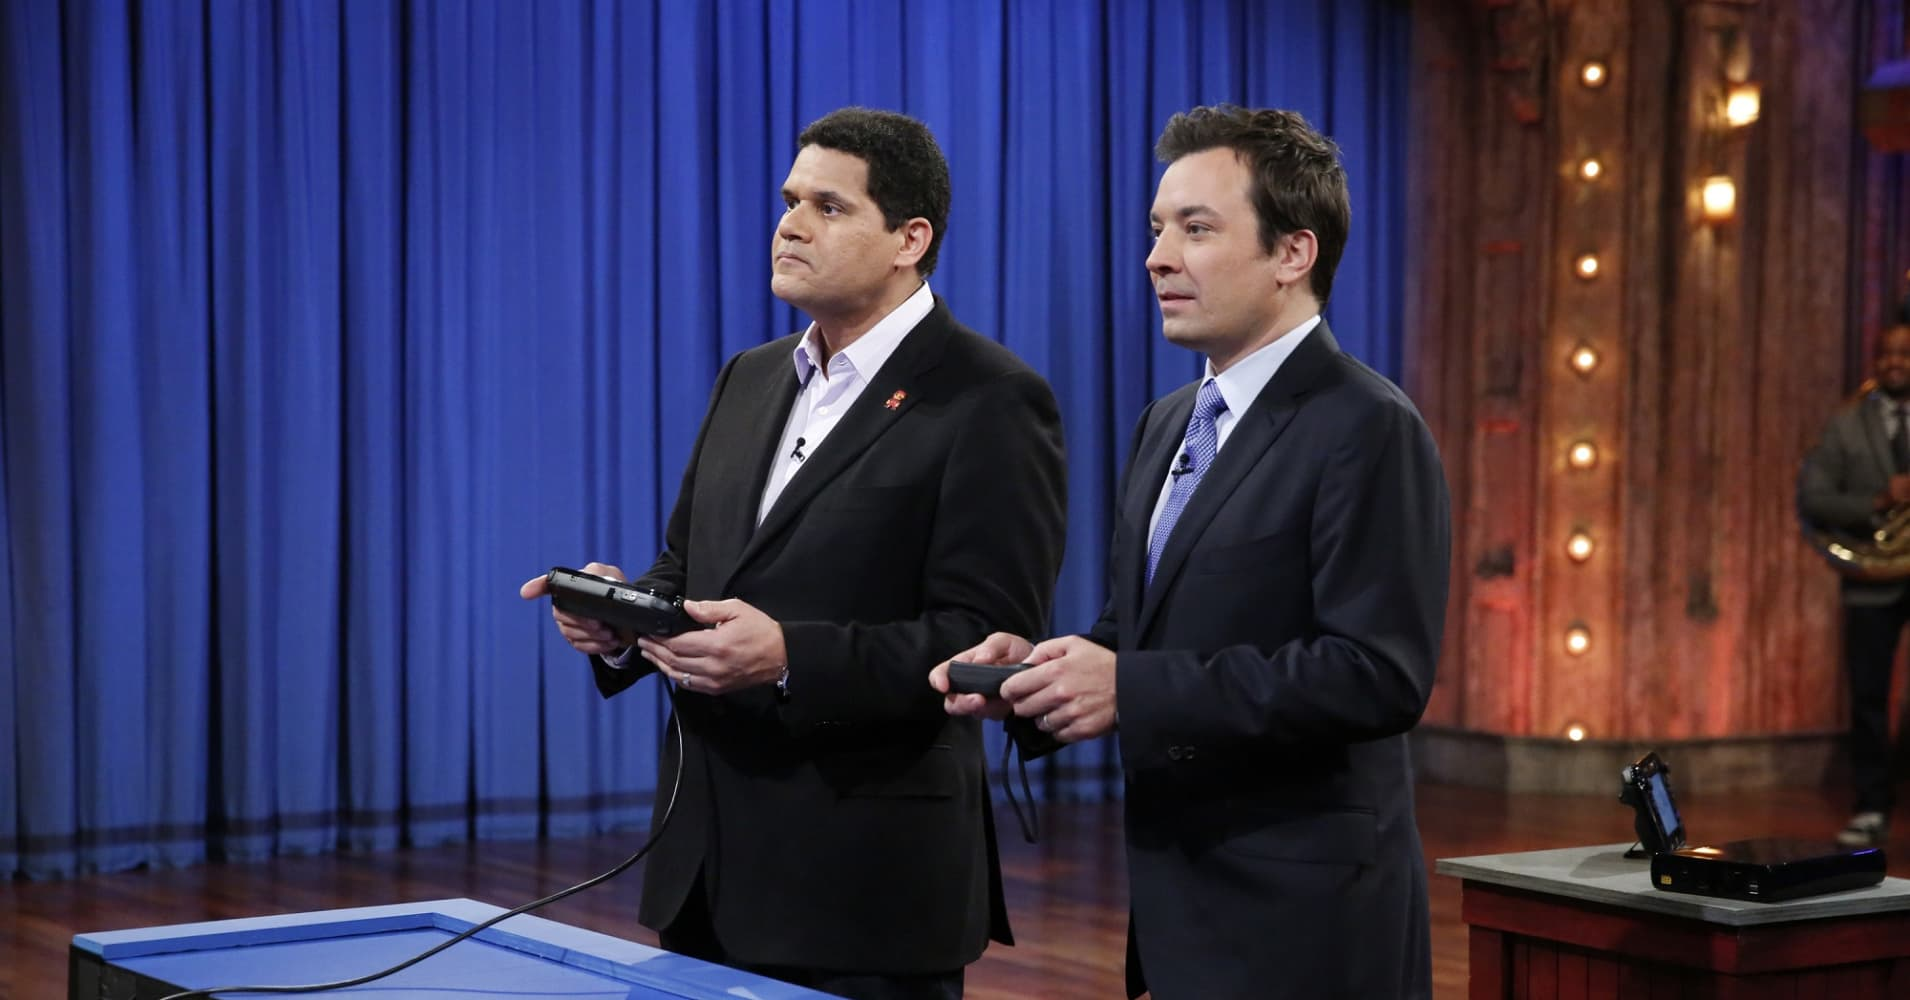 Reggie Fils-Aime and NBC Late Night host Jimmy Fallon playing Nintendo Wii U